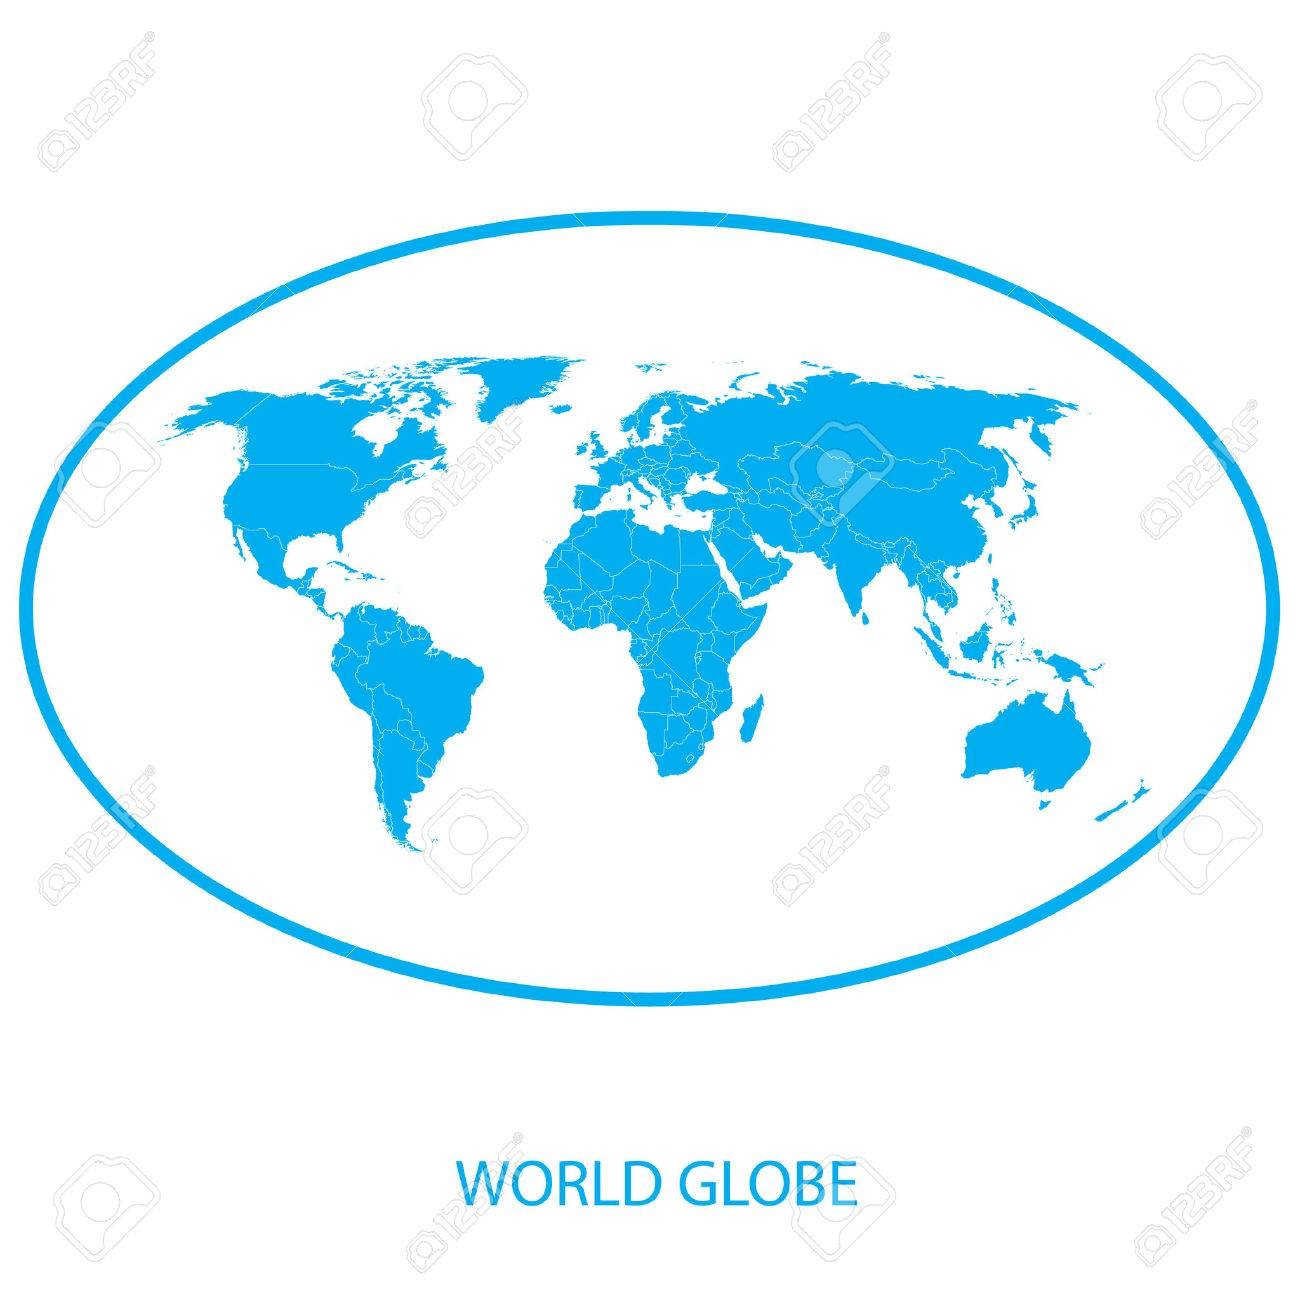 Globe icon world map royalty free cliparts vectors and stock globe icon world map stock vector 39041951 gumiabroncs Gallery